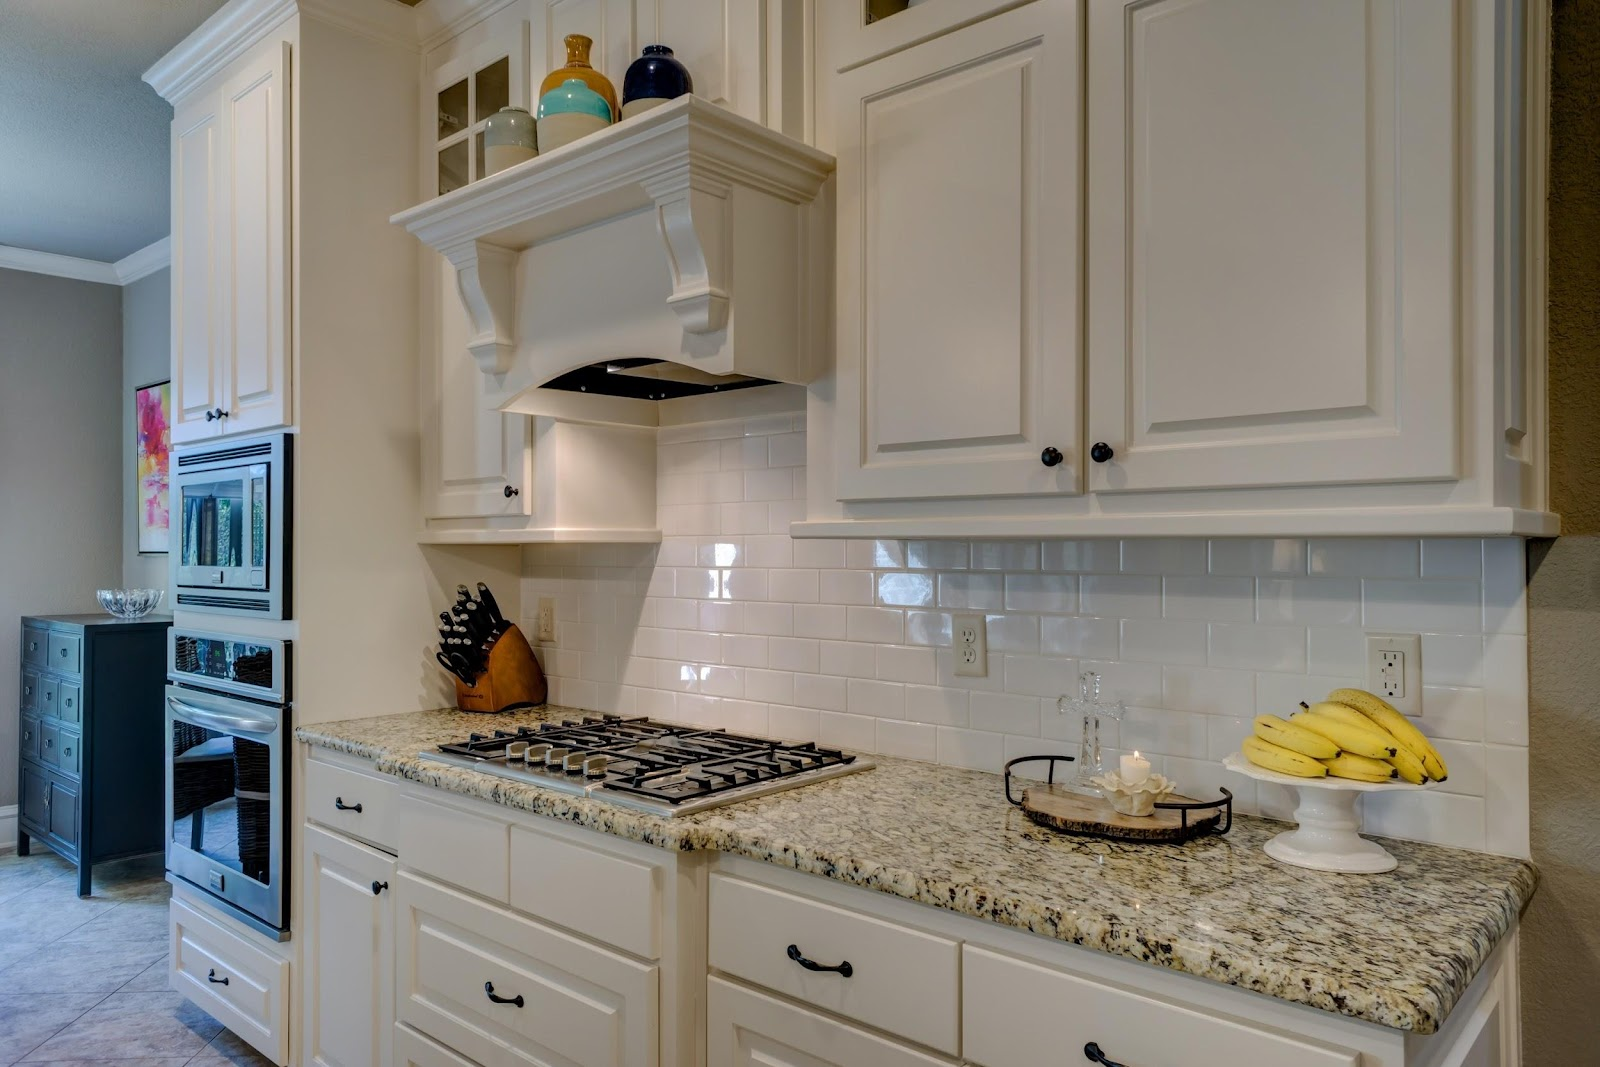 The kitchen is an integral part of the house. It is where you spend most of your time as a family. It is also where you prepare and cooks food from; it is also a place where you